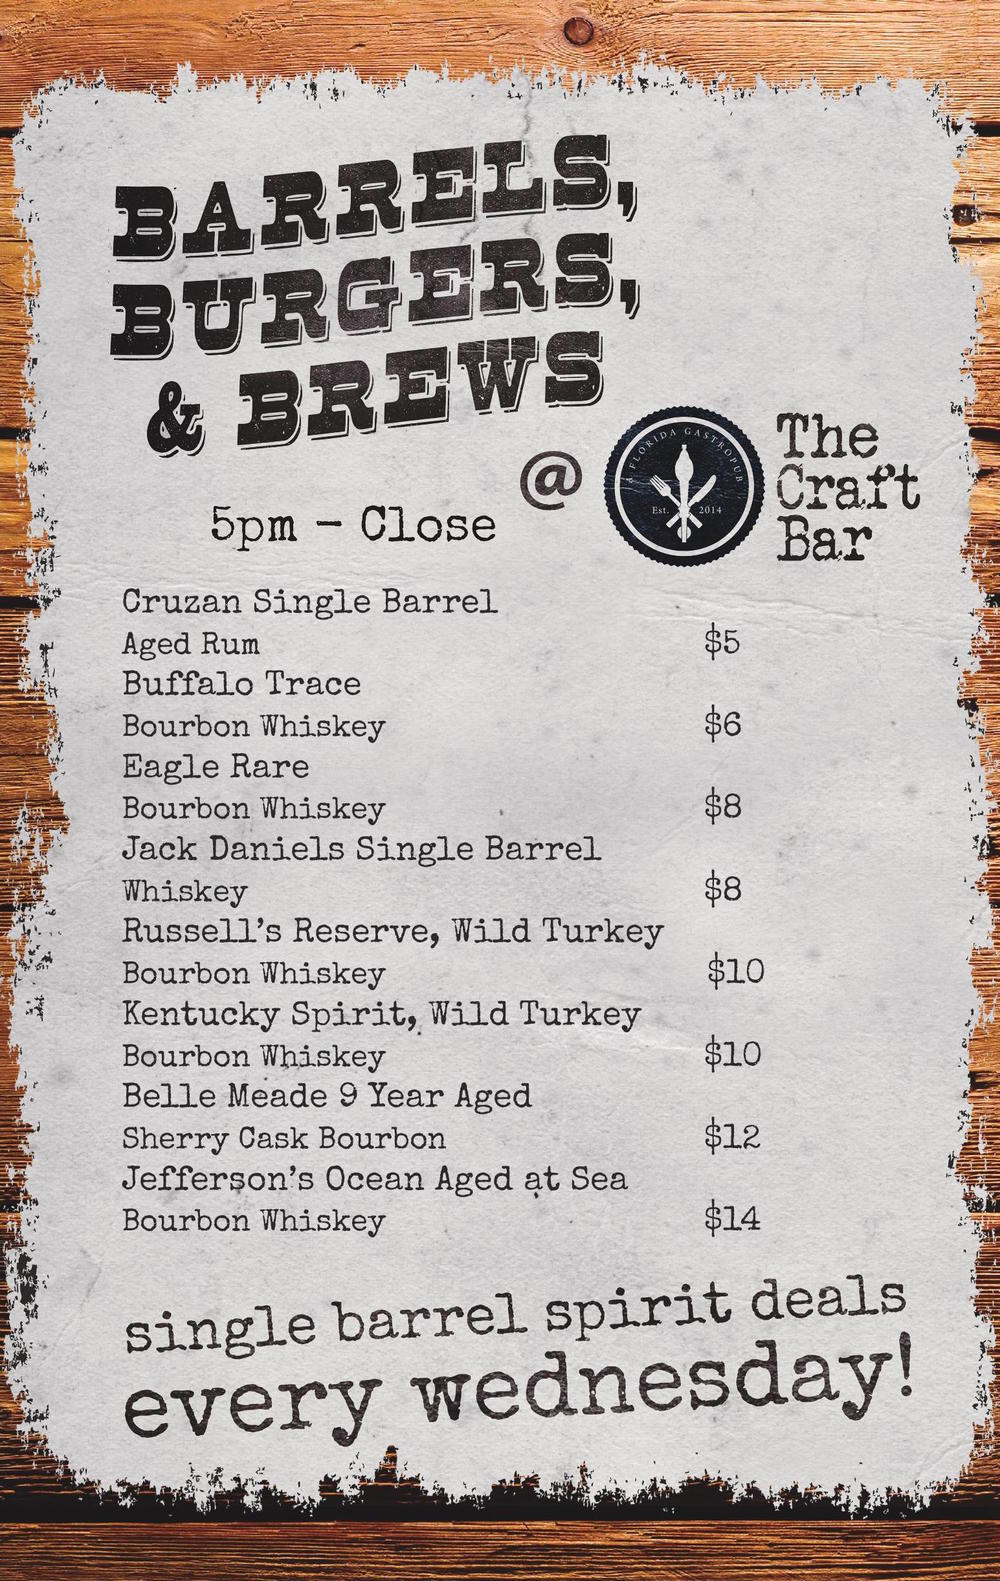 barrels burgers and brews 2 up flyer_06_14_16-page-001.jpg